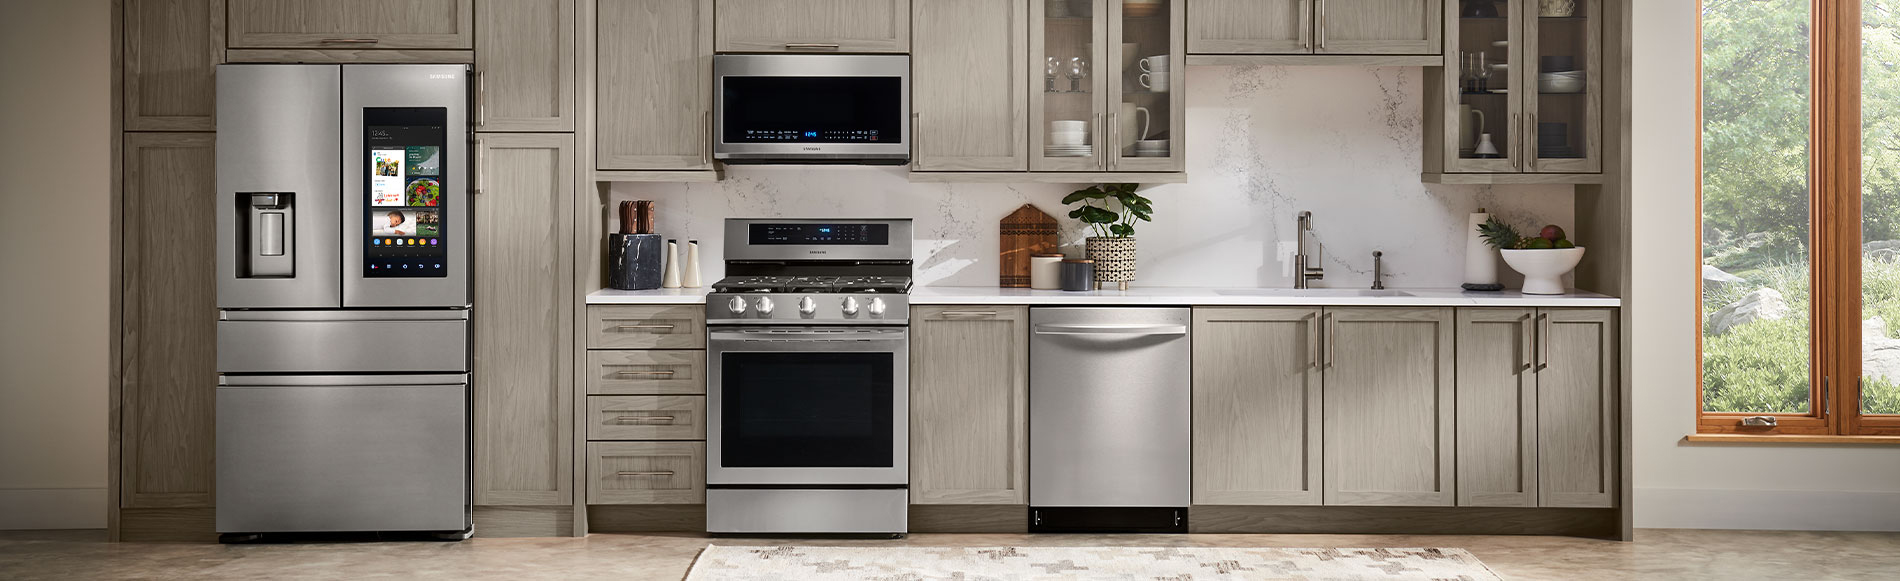 Samsung Appliances Products Online